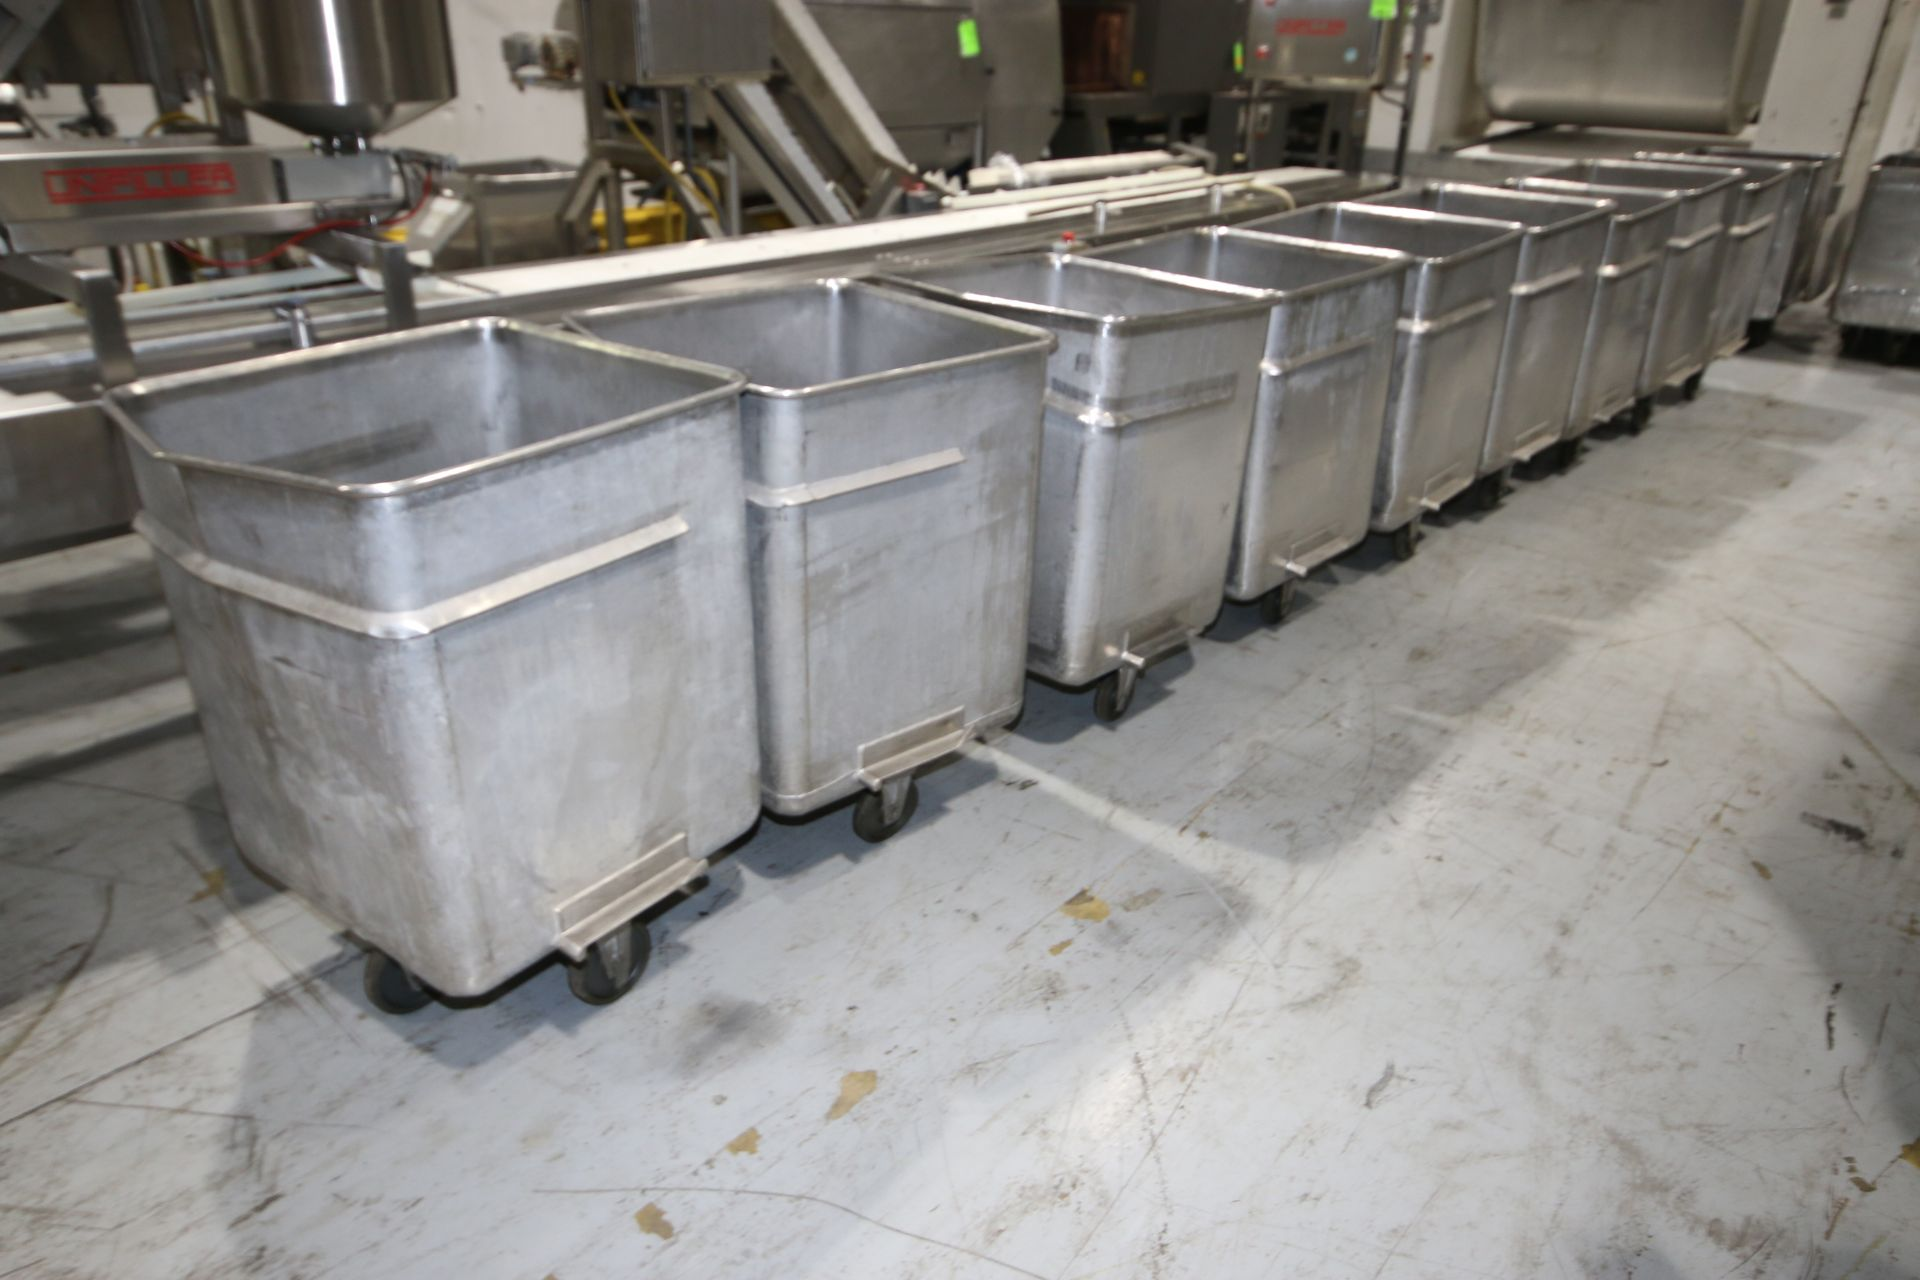 "S/S Portable Totes, Internal Dims.: Aprox. 24"" L x 24-1/2"" W x 31"" Deep, with (4) Bottom Mounted - Image 7 of 13"